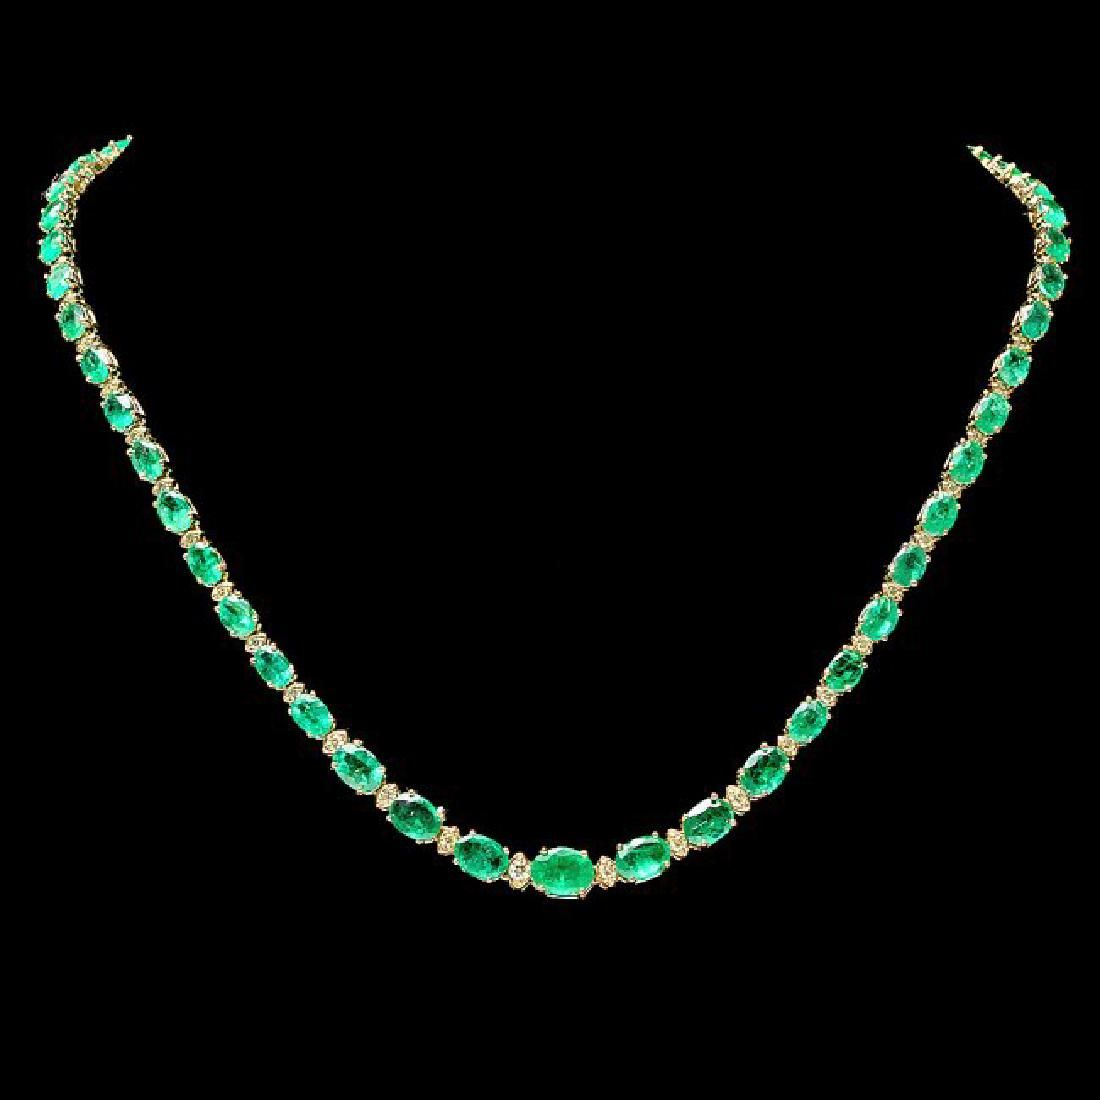 14k Gold 22ct Emerald 1.10ct Diamond Necklace